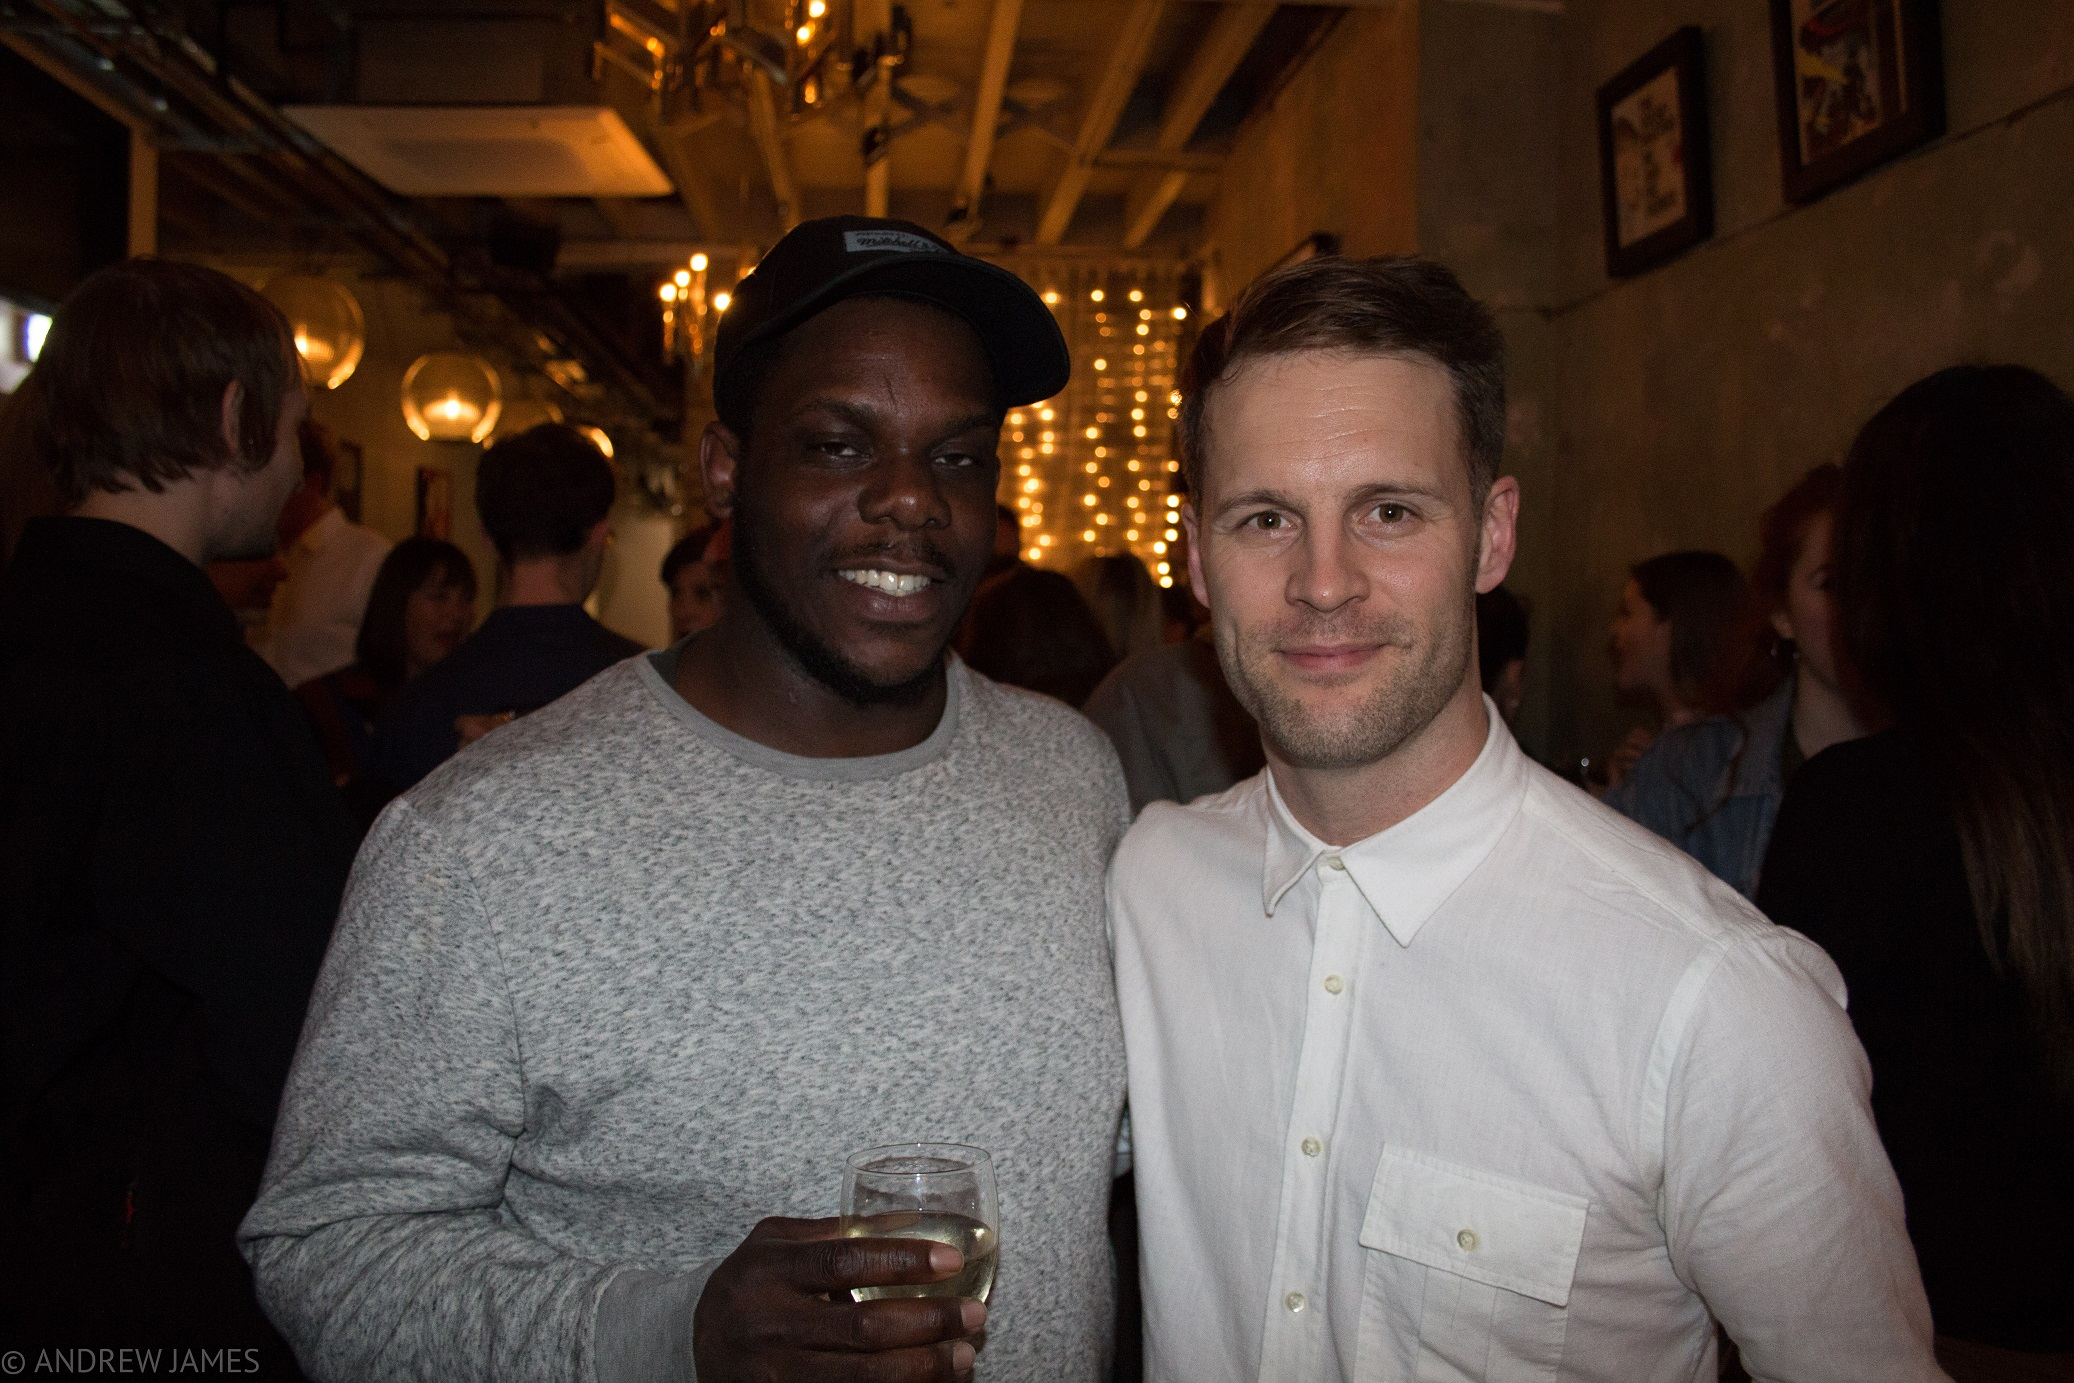 NYT West End REP Directors Roy Alexander Weise (Jekyll and Hyde) and Simon Pittman (Othello) at the opening night of Othello